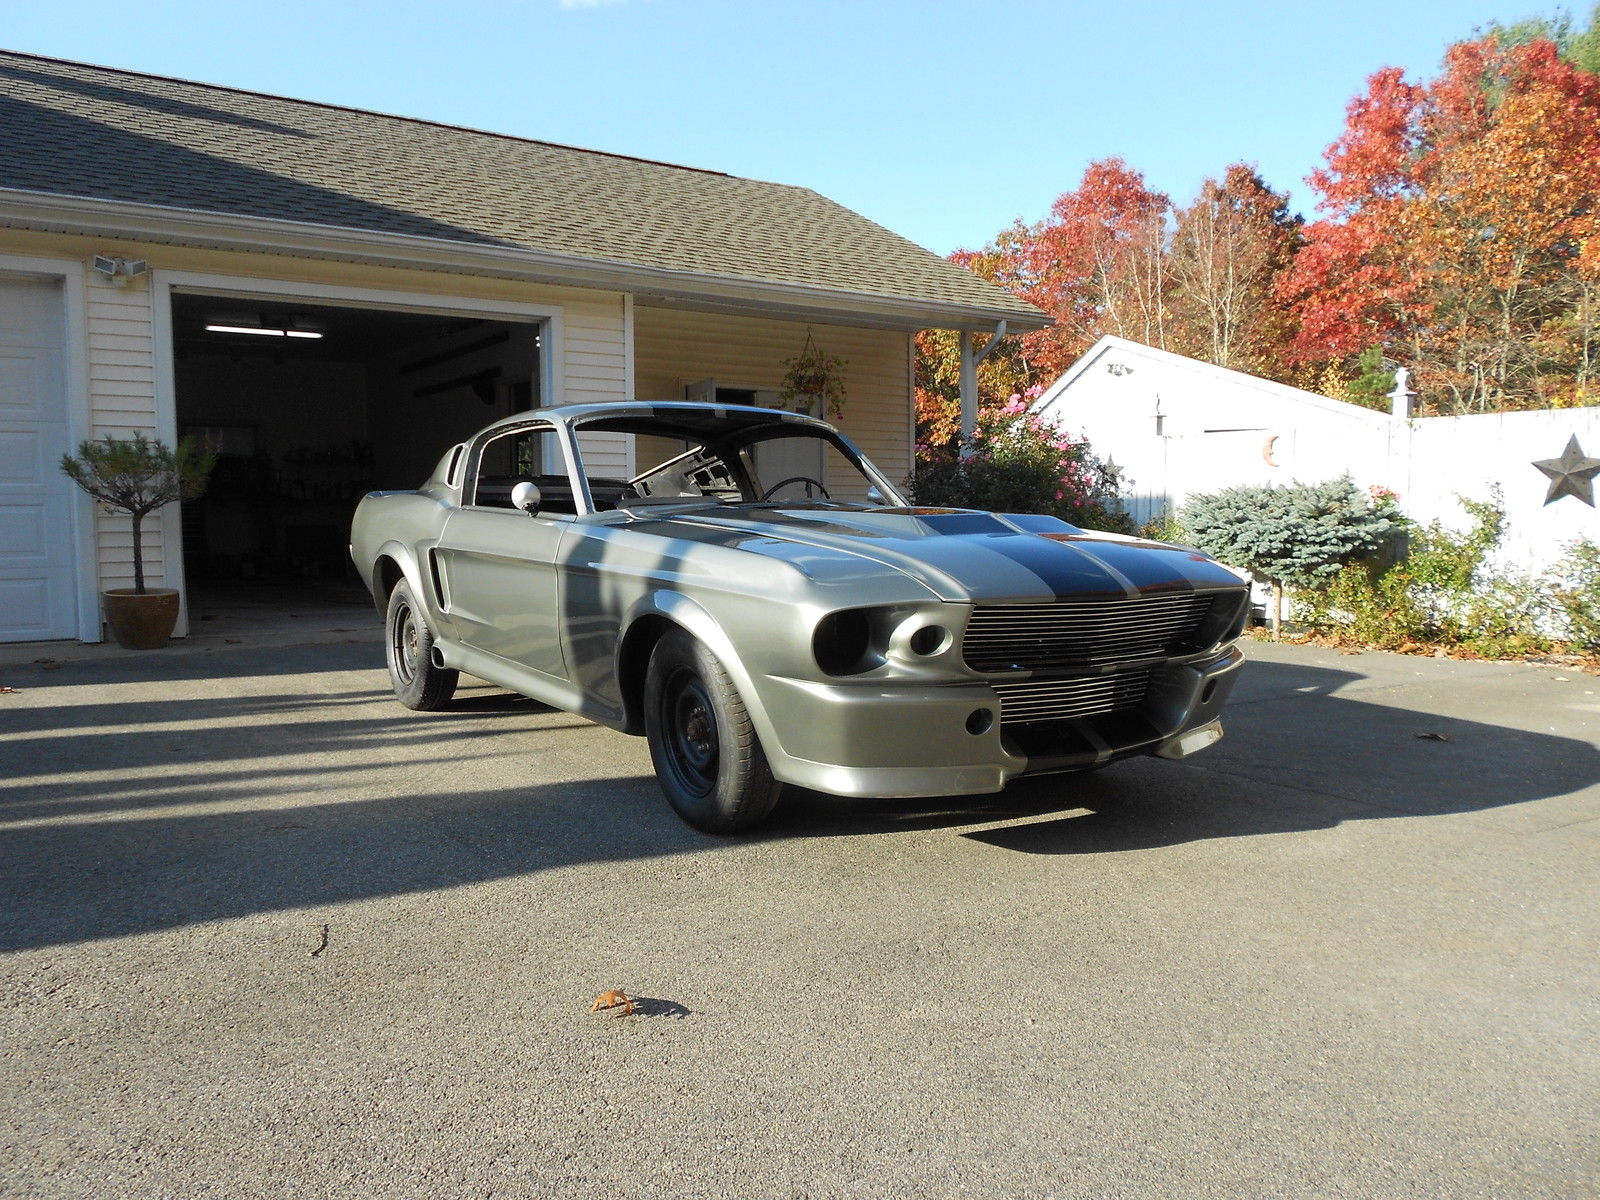 1967 Mustang Fastback Shelby Eleanor 1967-1968 GT500 ...